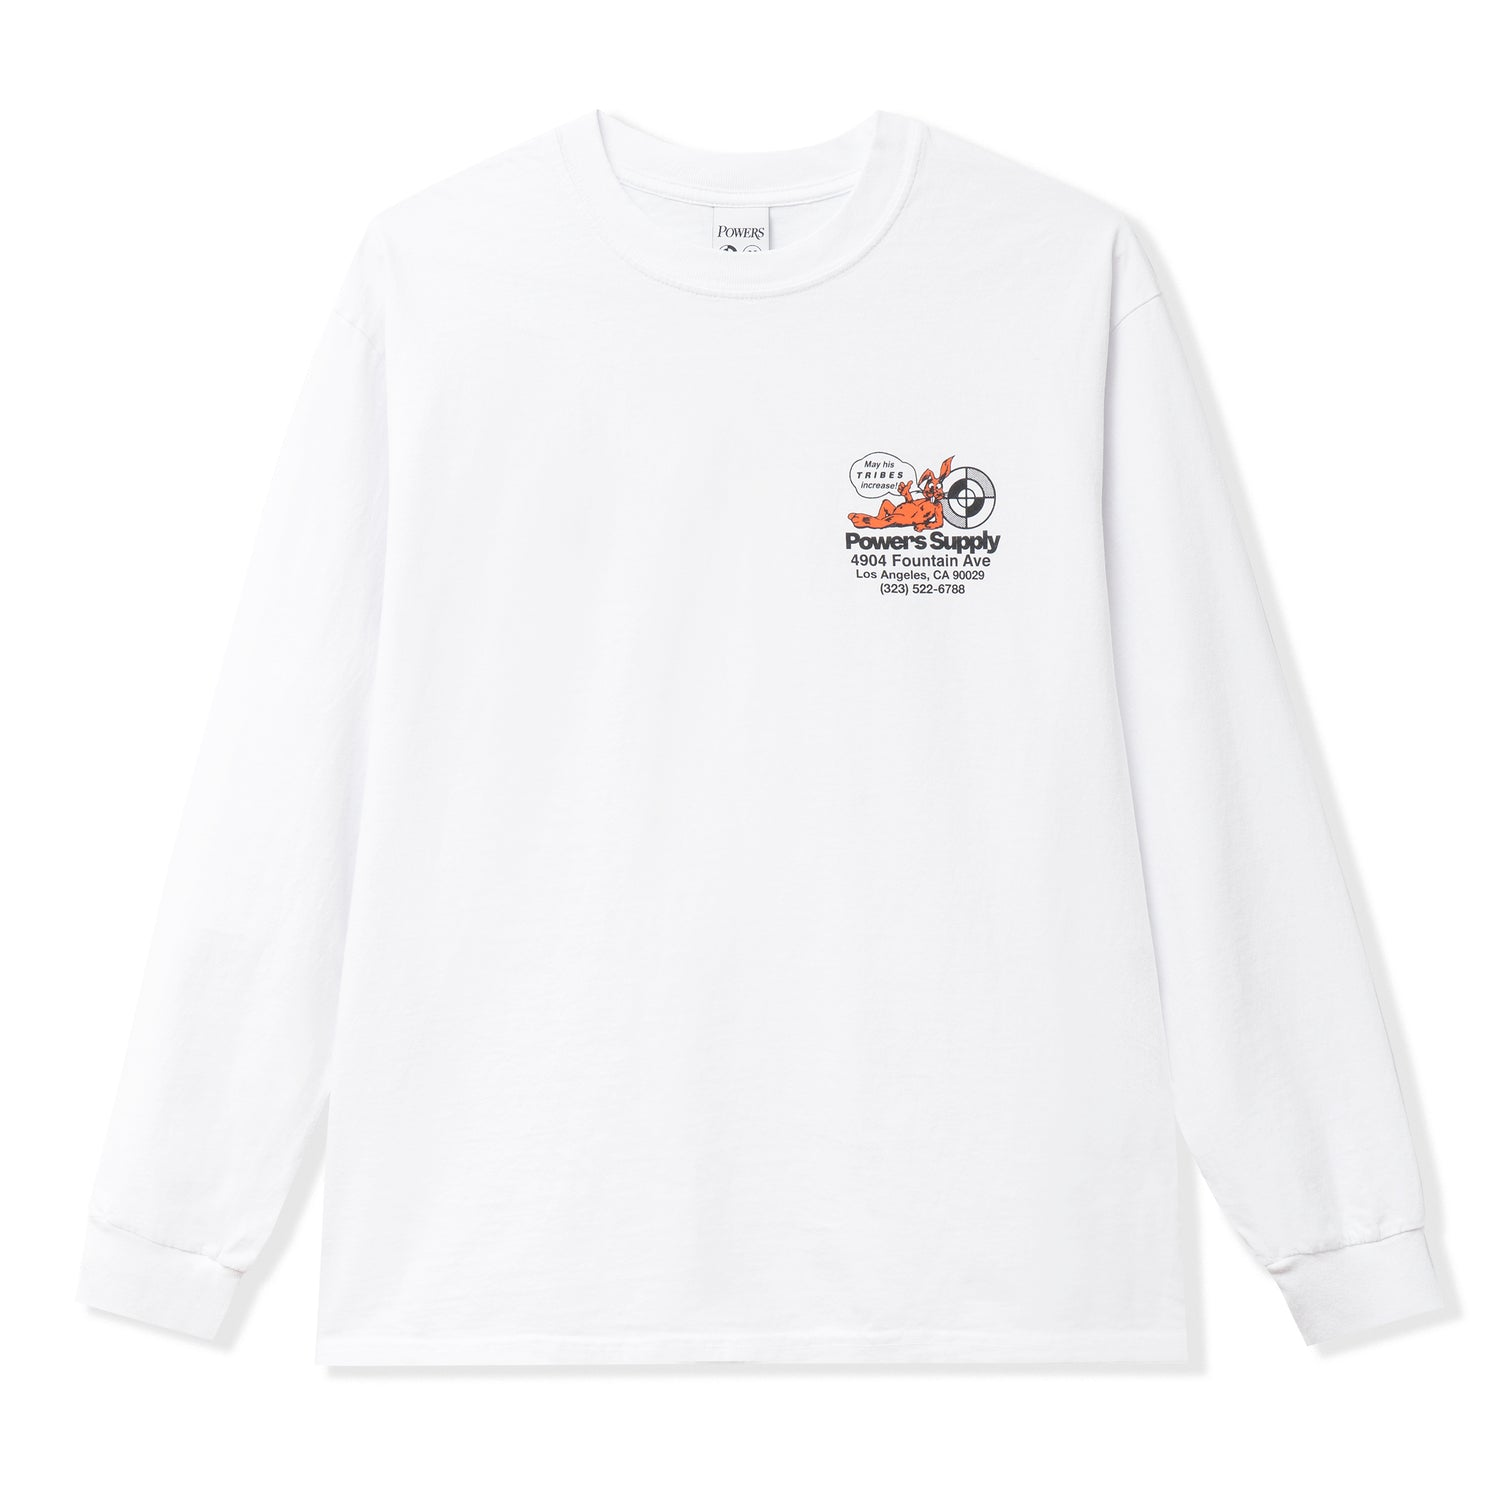 Powers Shop L/S Tee, White